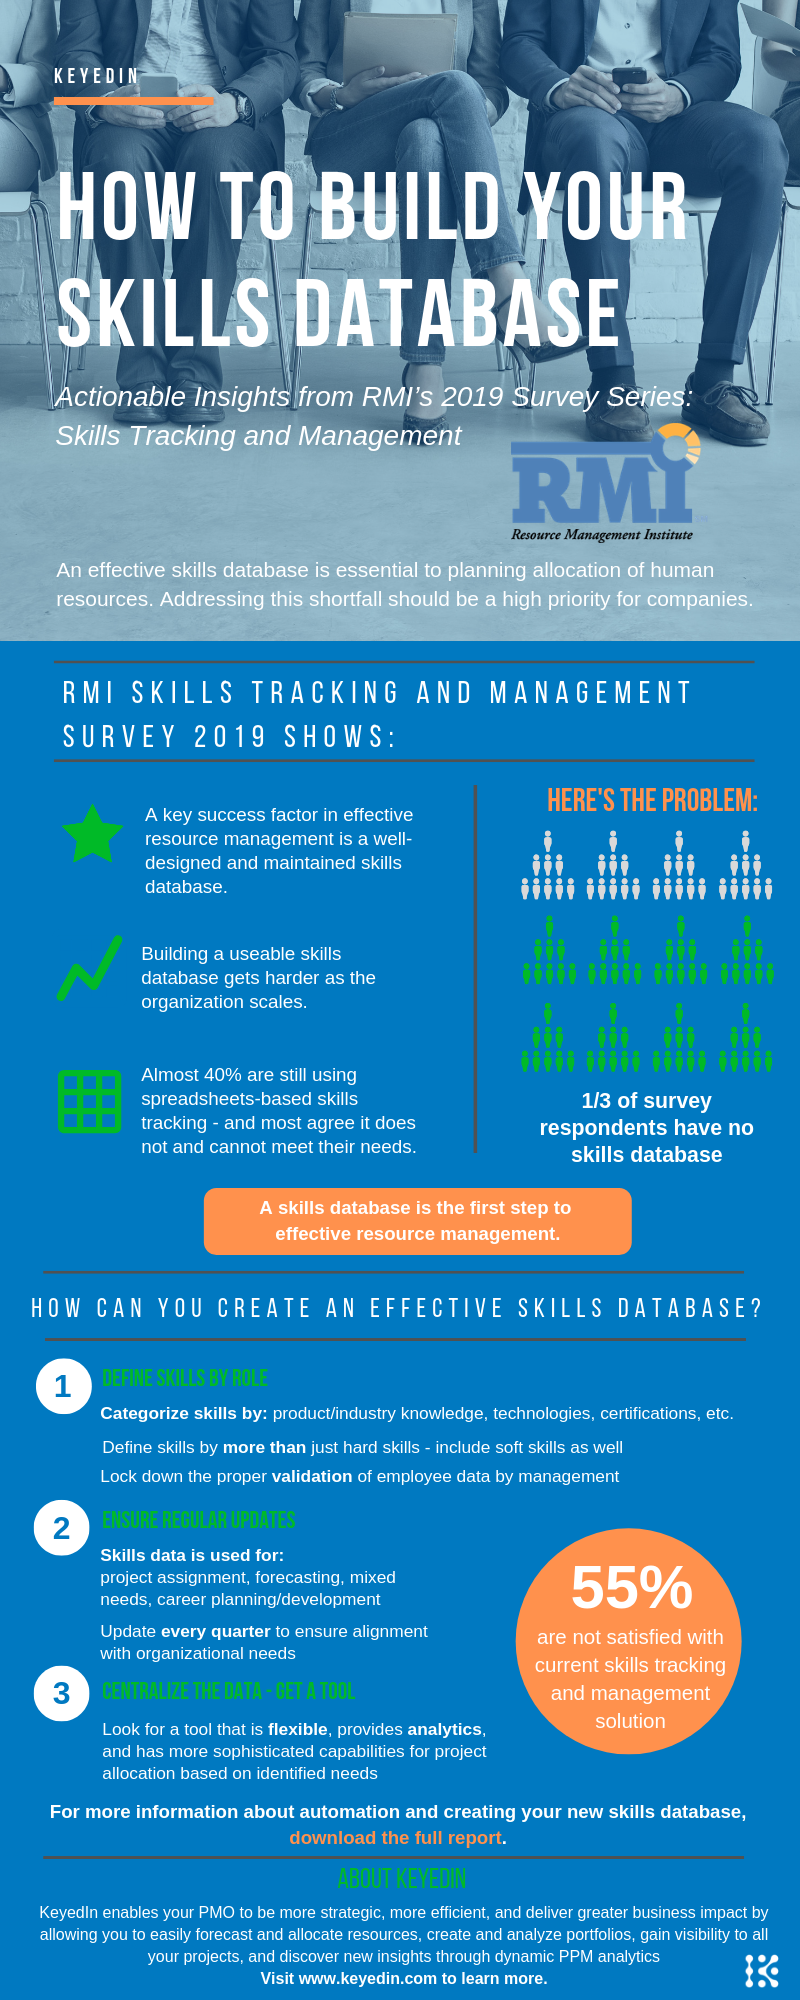 How to Build Your Skills Database Infographic